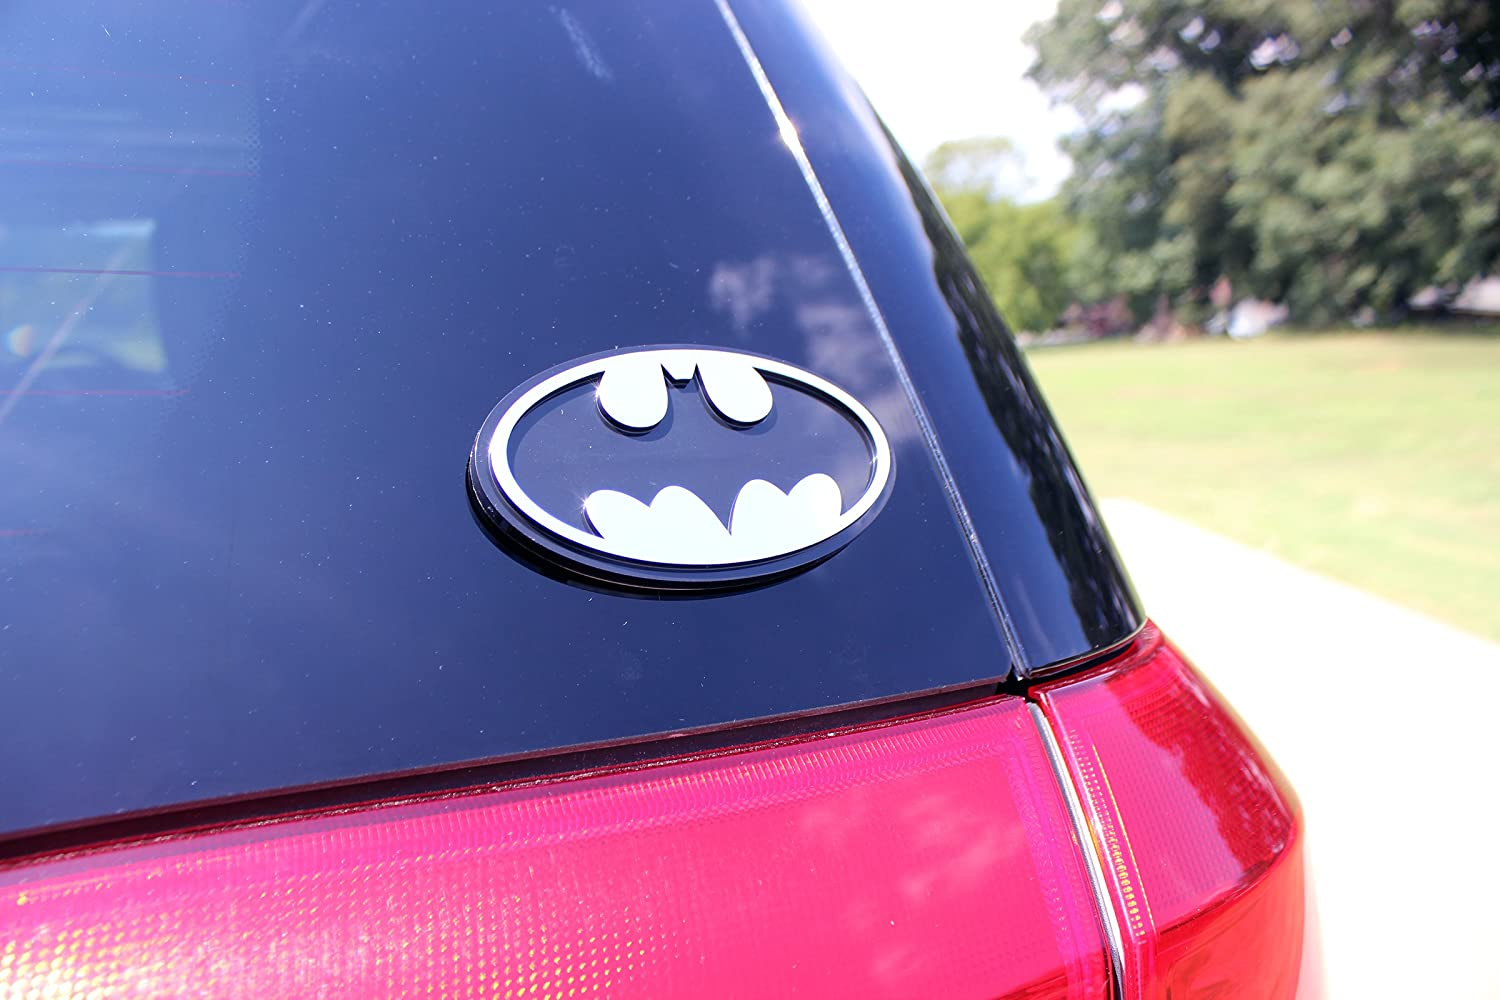 Amazon.com: Chroma 41504 Batman Logo Injection Molded Chrome Colored Emblem Decal: Automotive